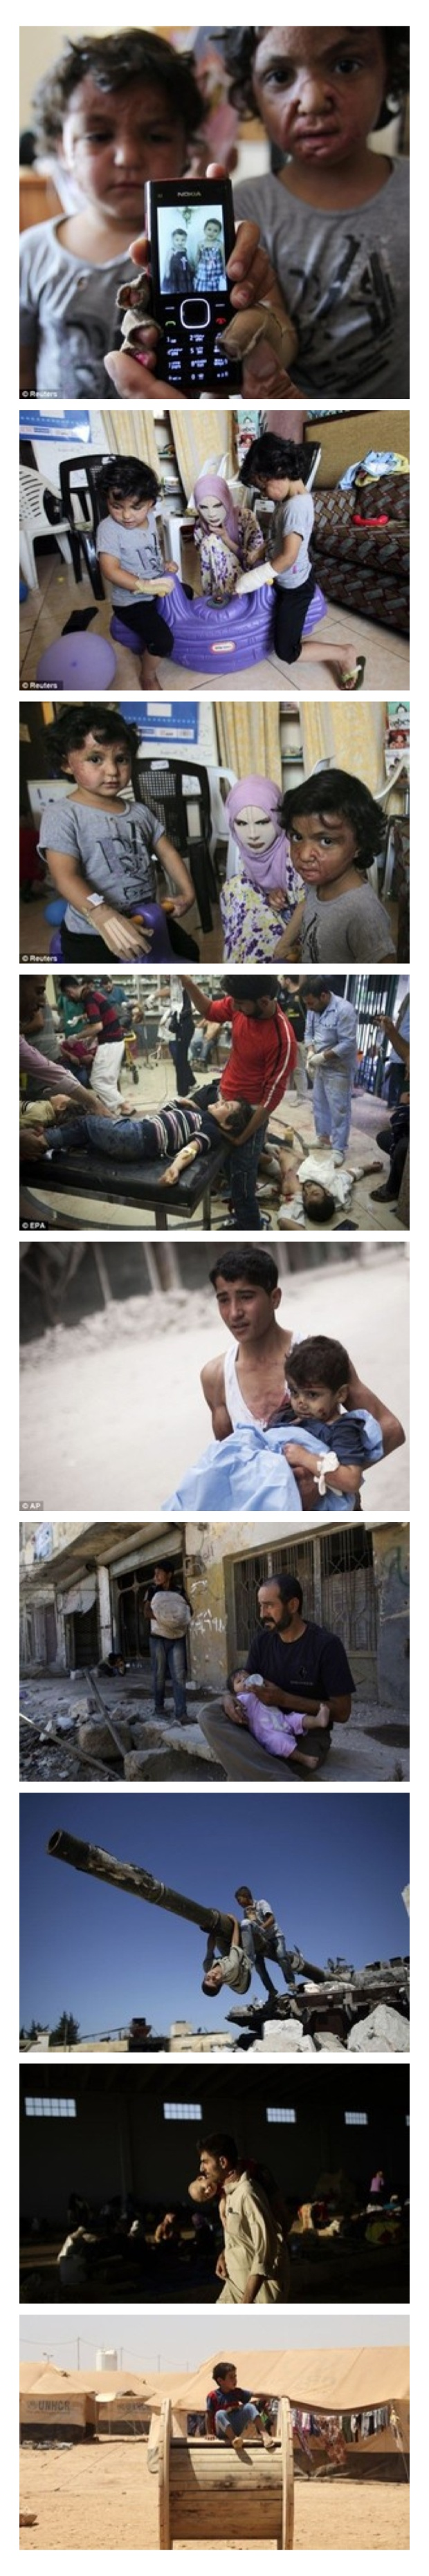 #War In #Syria fight for #freedom!?!? Fight for peace!?!?